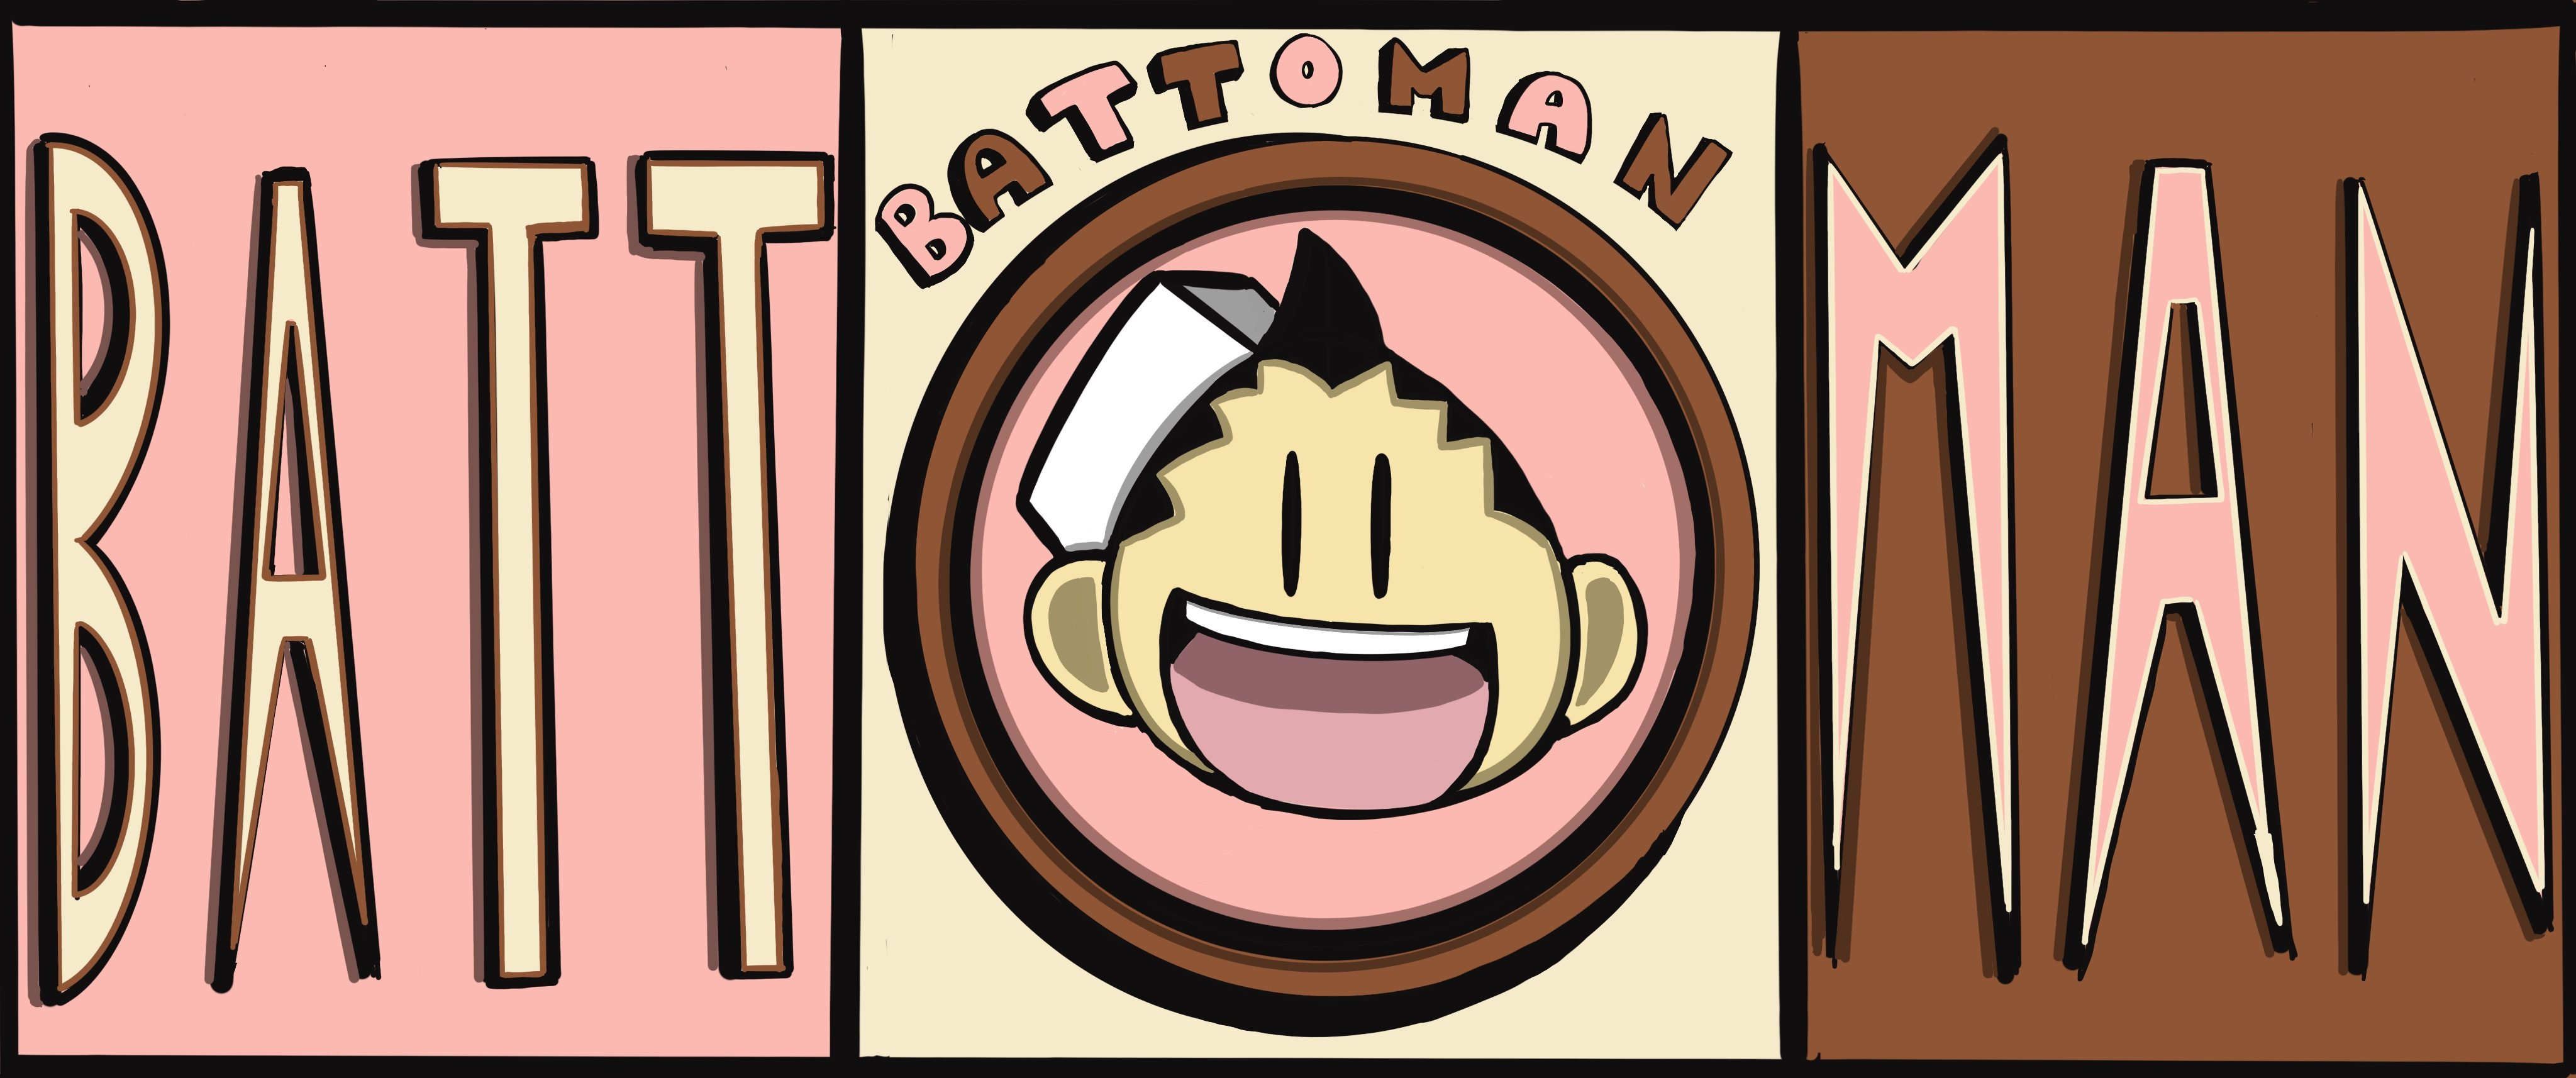 The Adventures of Battoman